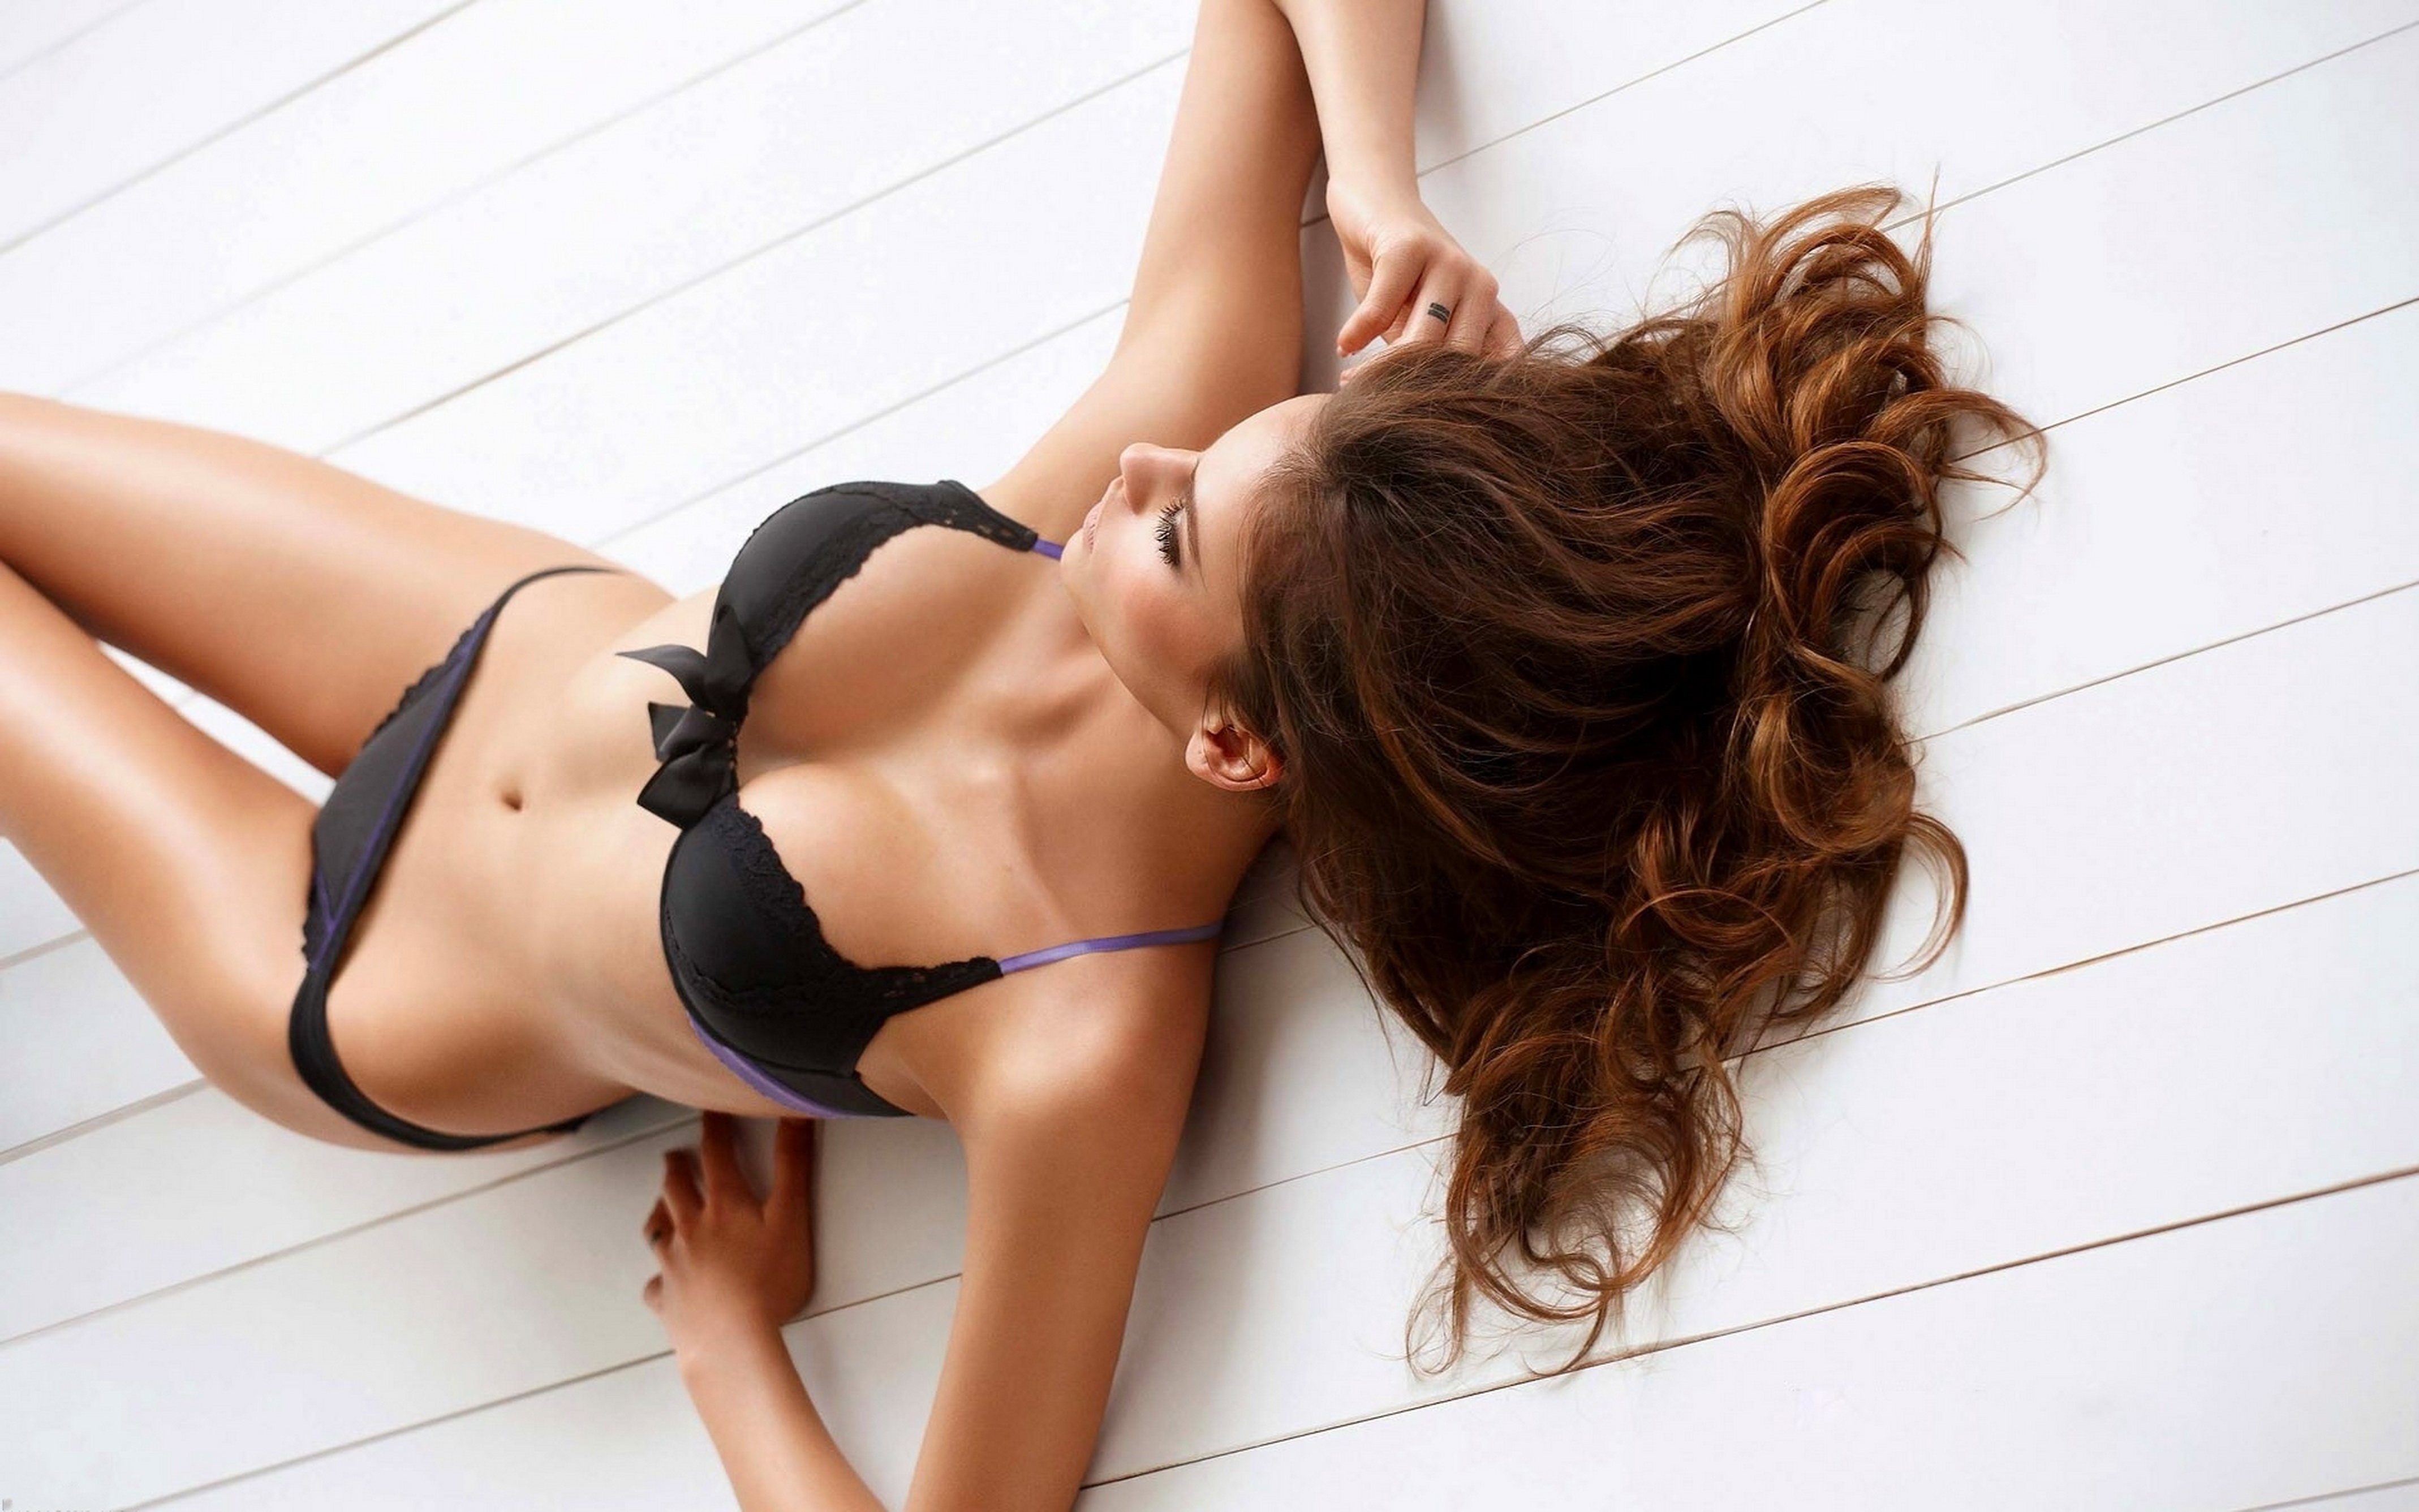 Escorts in London with fit body erotic dream